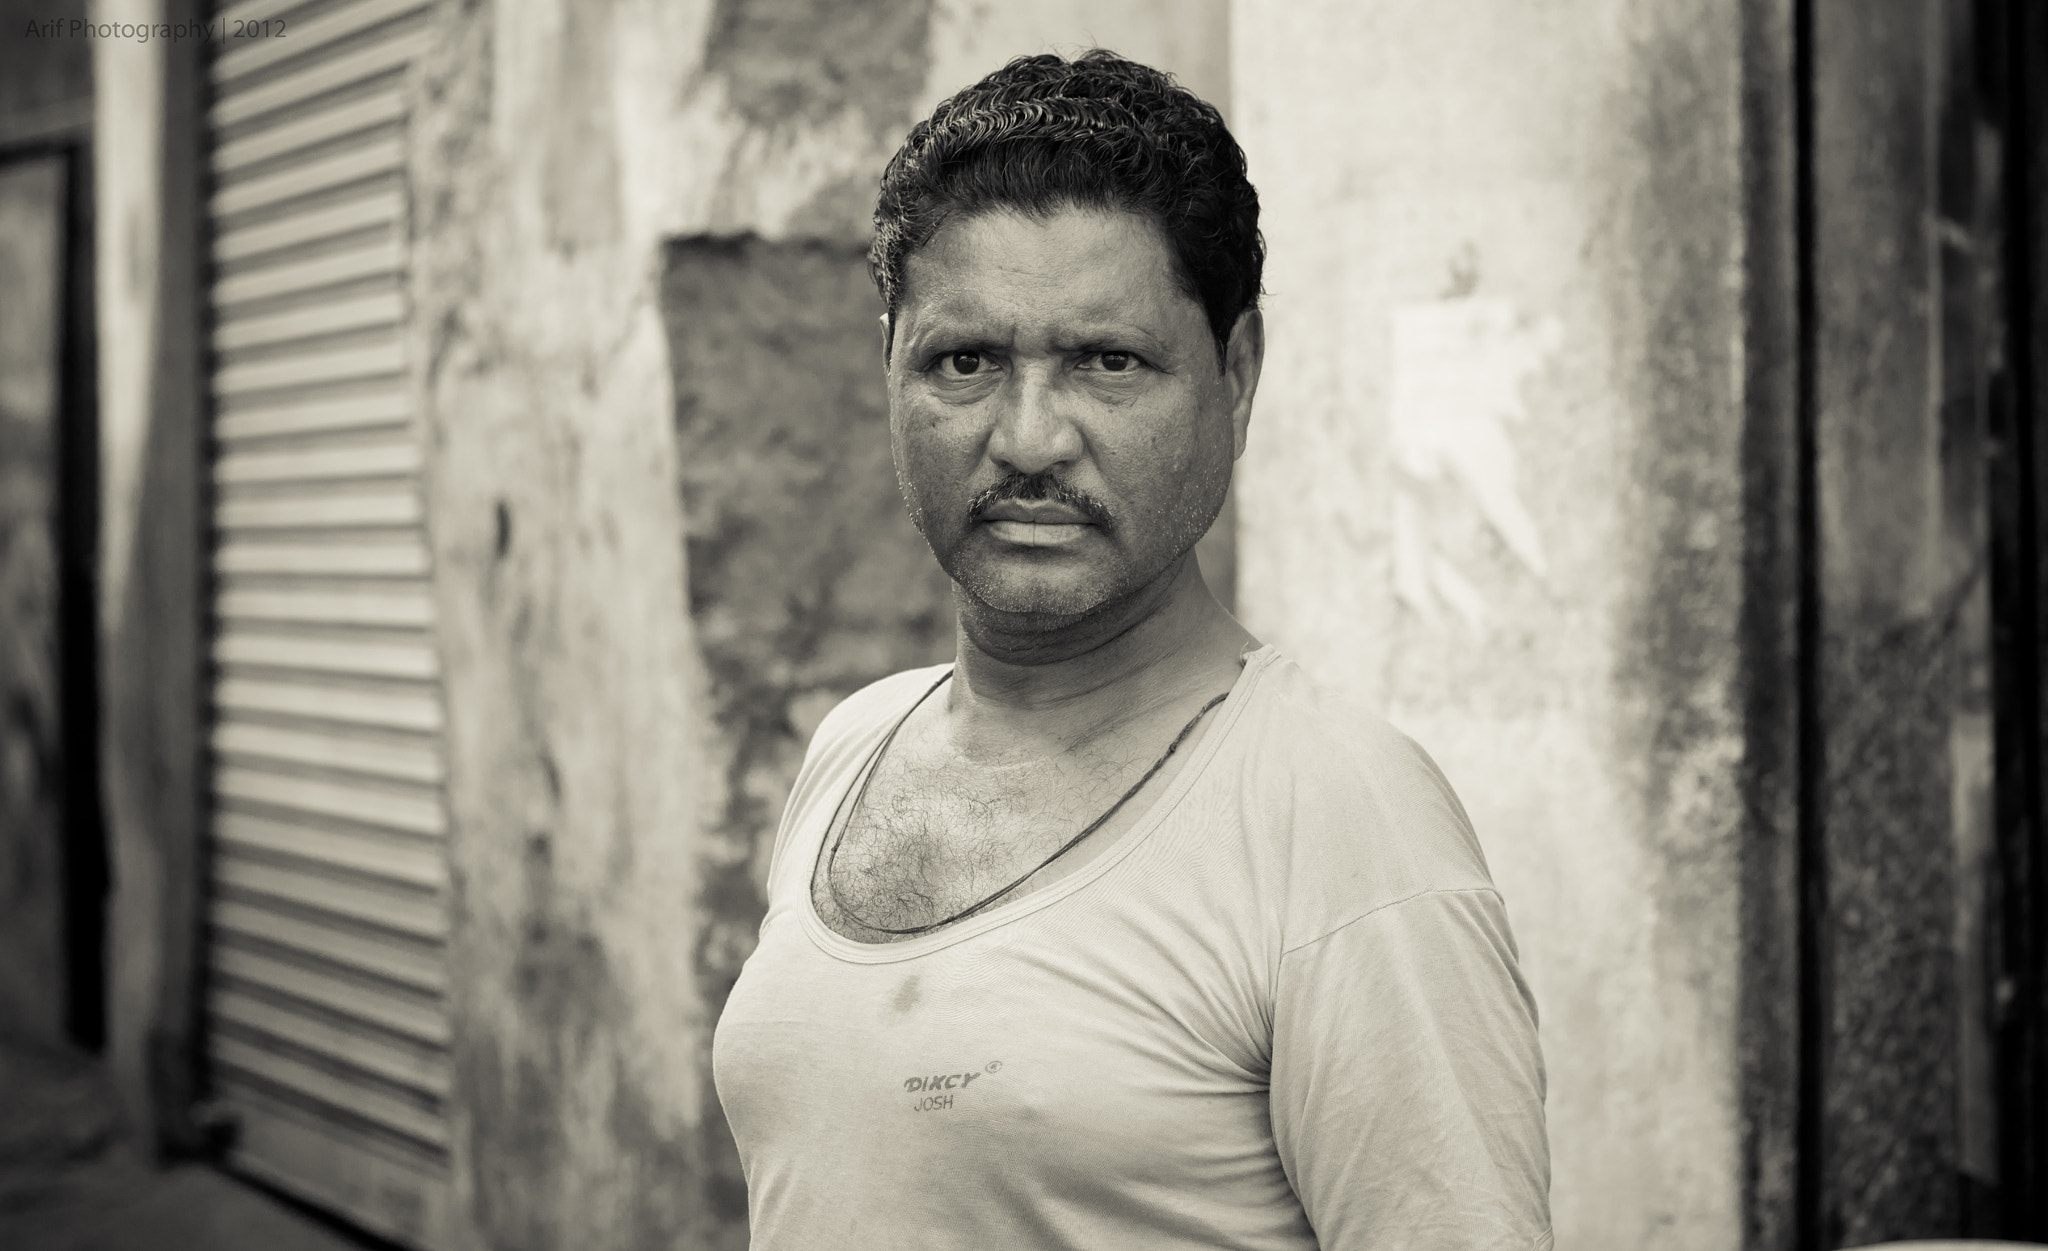 Photograph Stare by Arif Mohammad on 500px